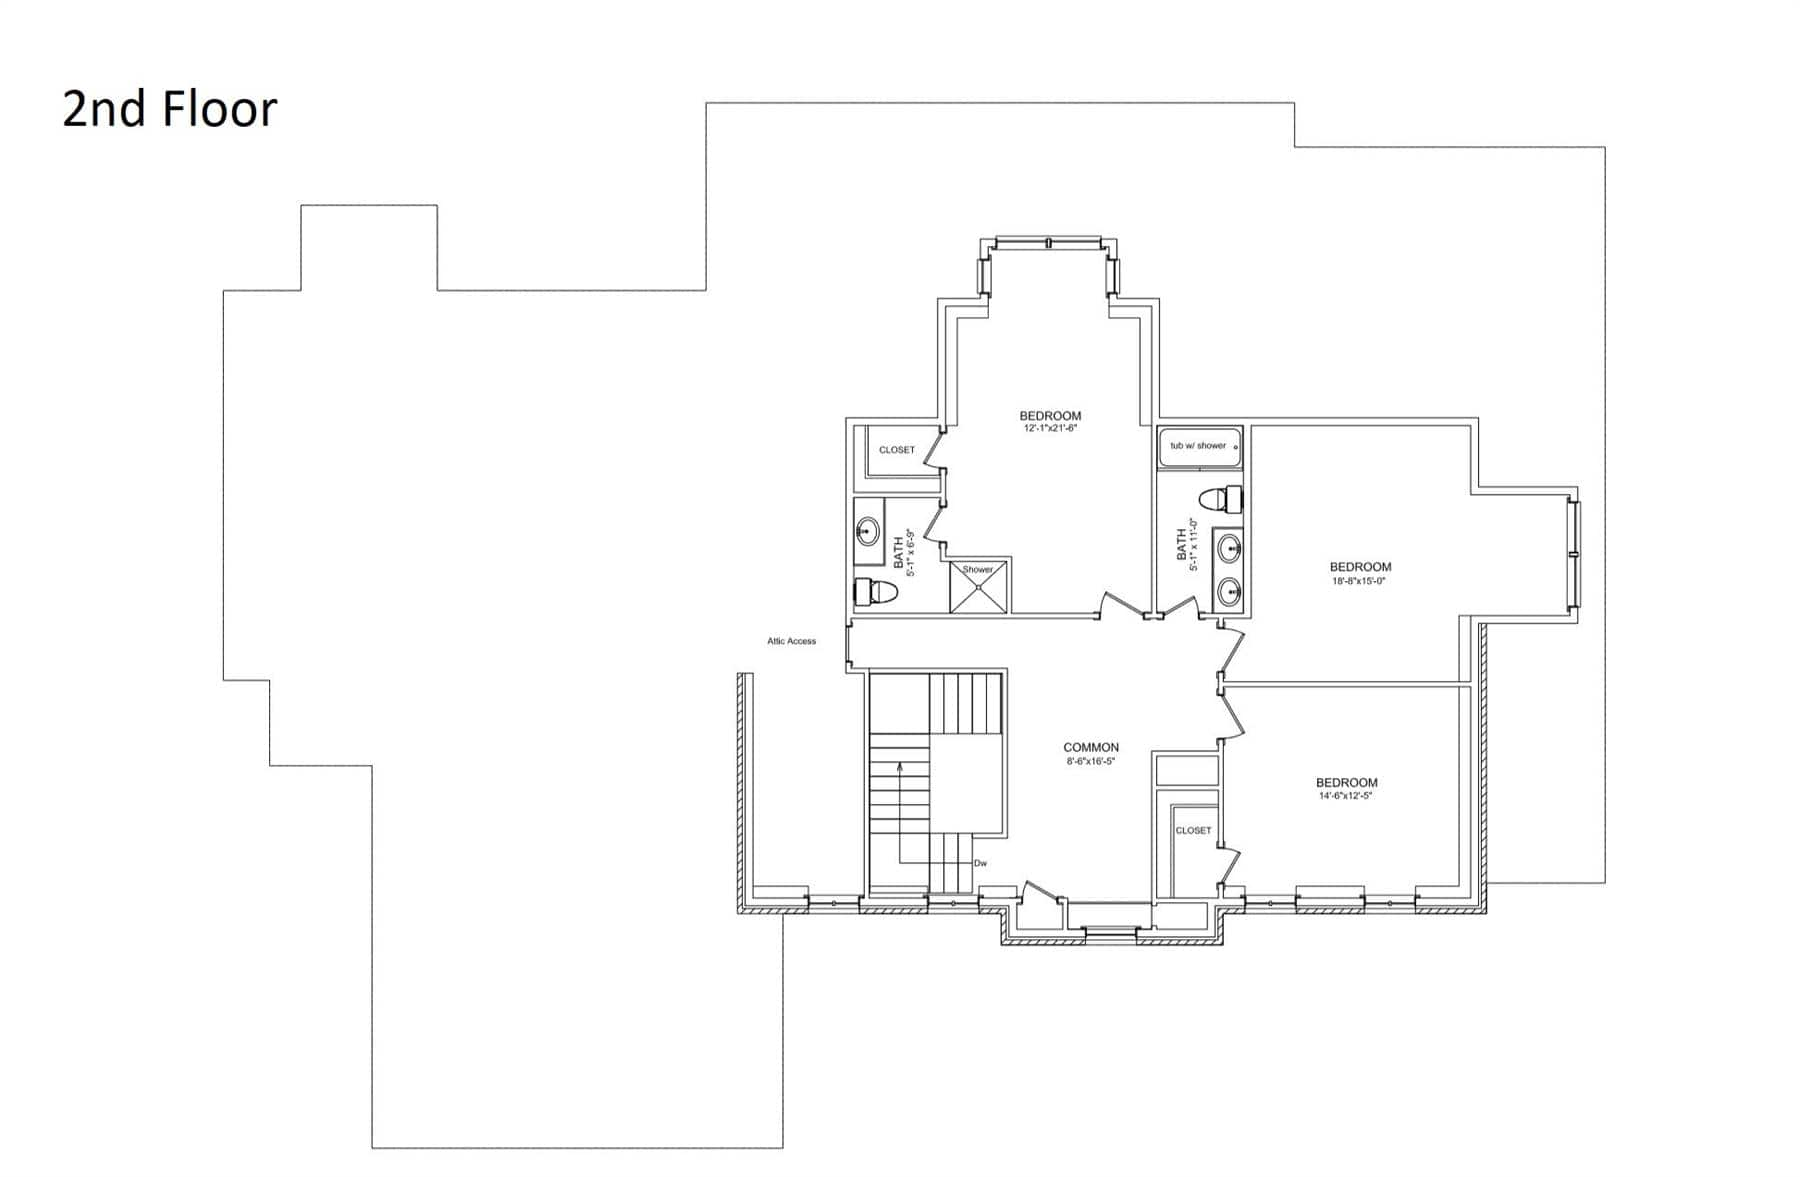 Second level floor plan with three bedrooms, two baths, and an open common room.